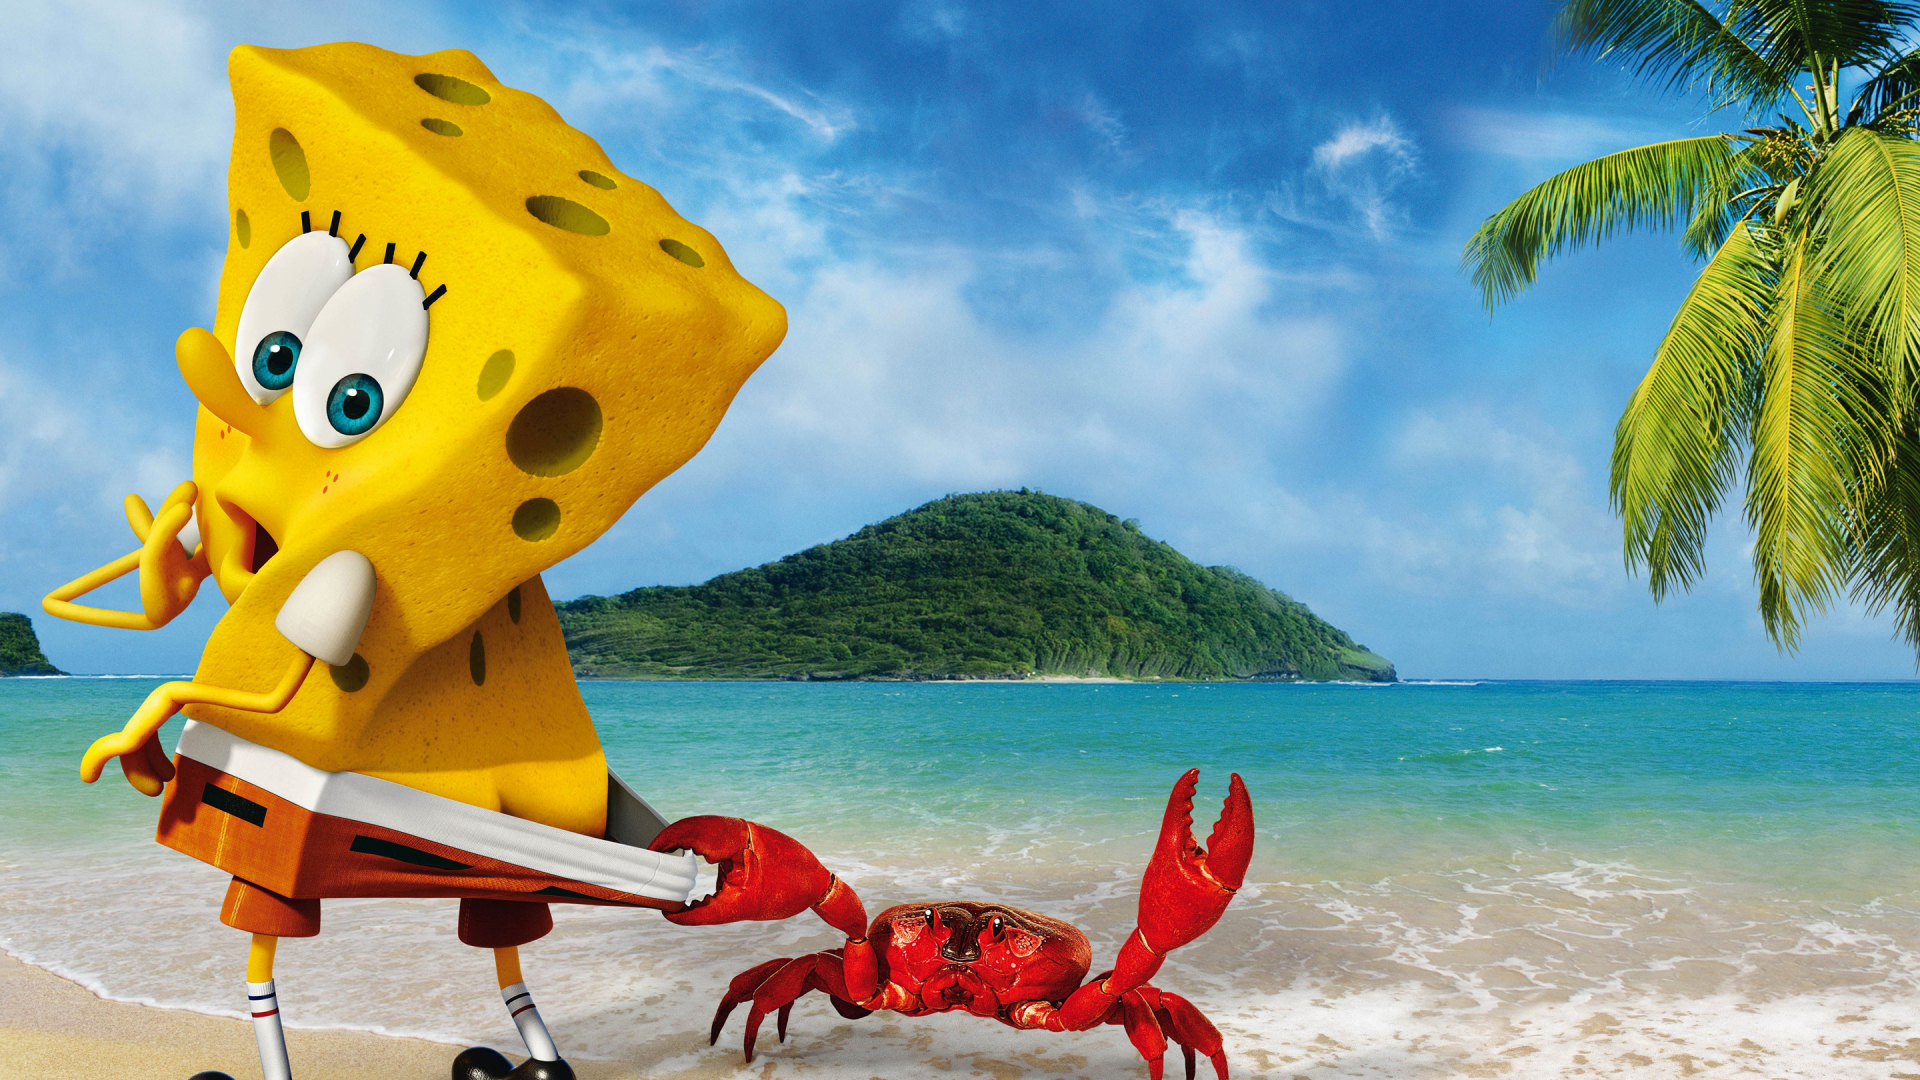 1920x1080 Spongebob Crab Funny 1080p Laptop Full Hd Wallpaper Hd Cartoon 4k Wallpapers Images Photos And Background